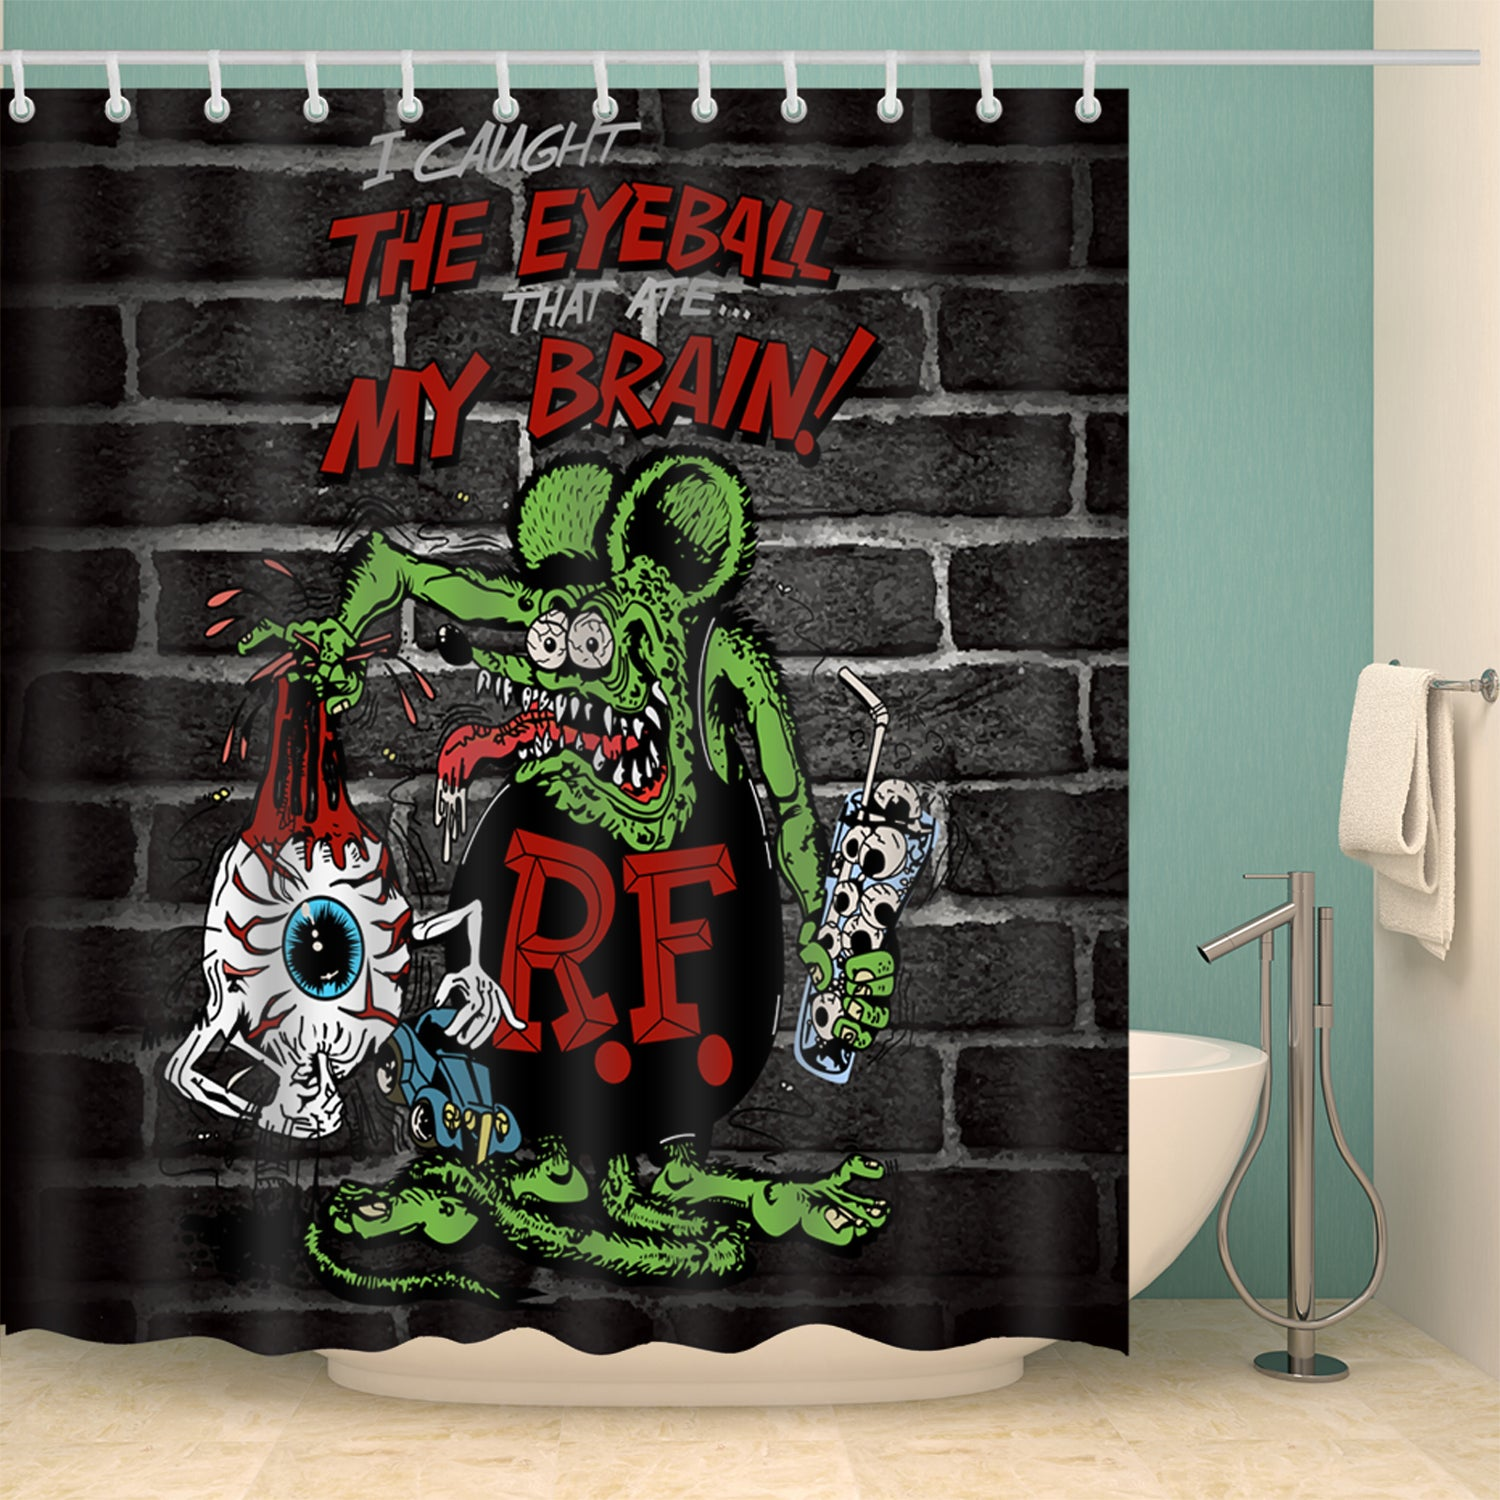 The Eyeball Mouse Mural Art Shower Curtain